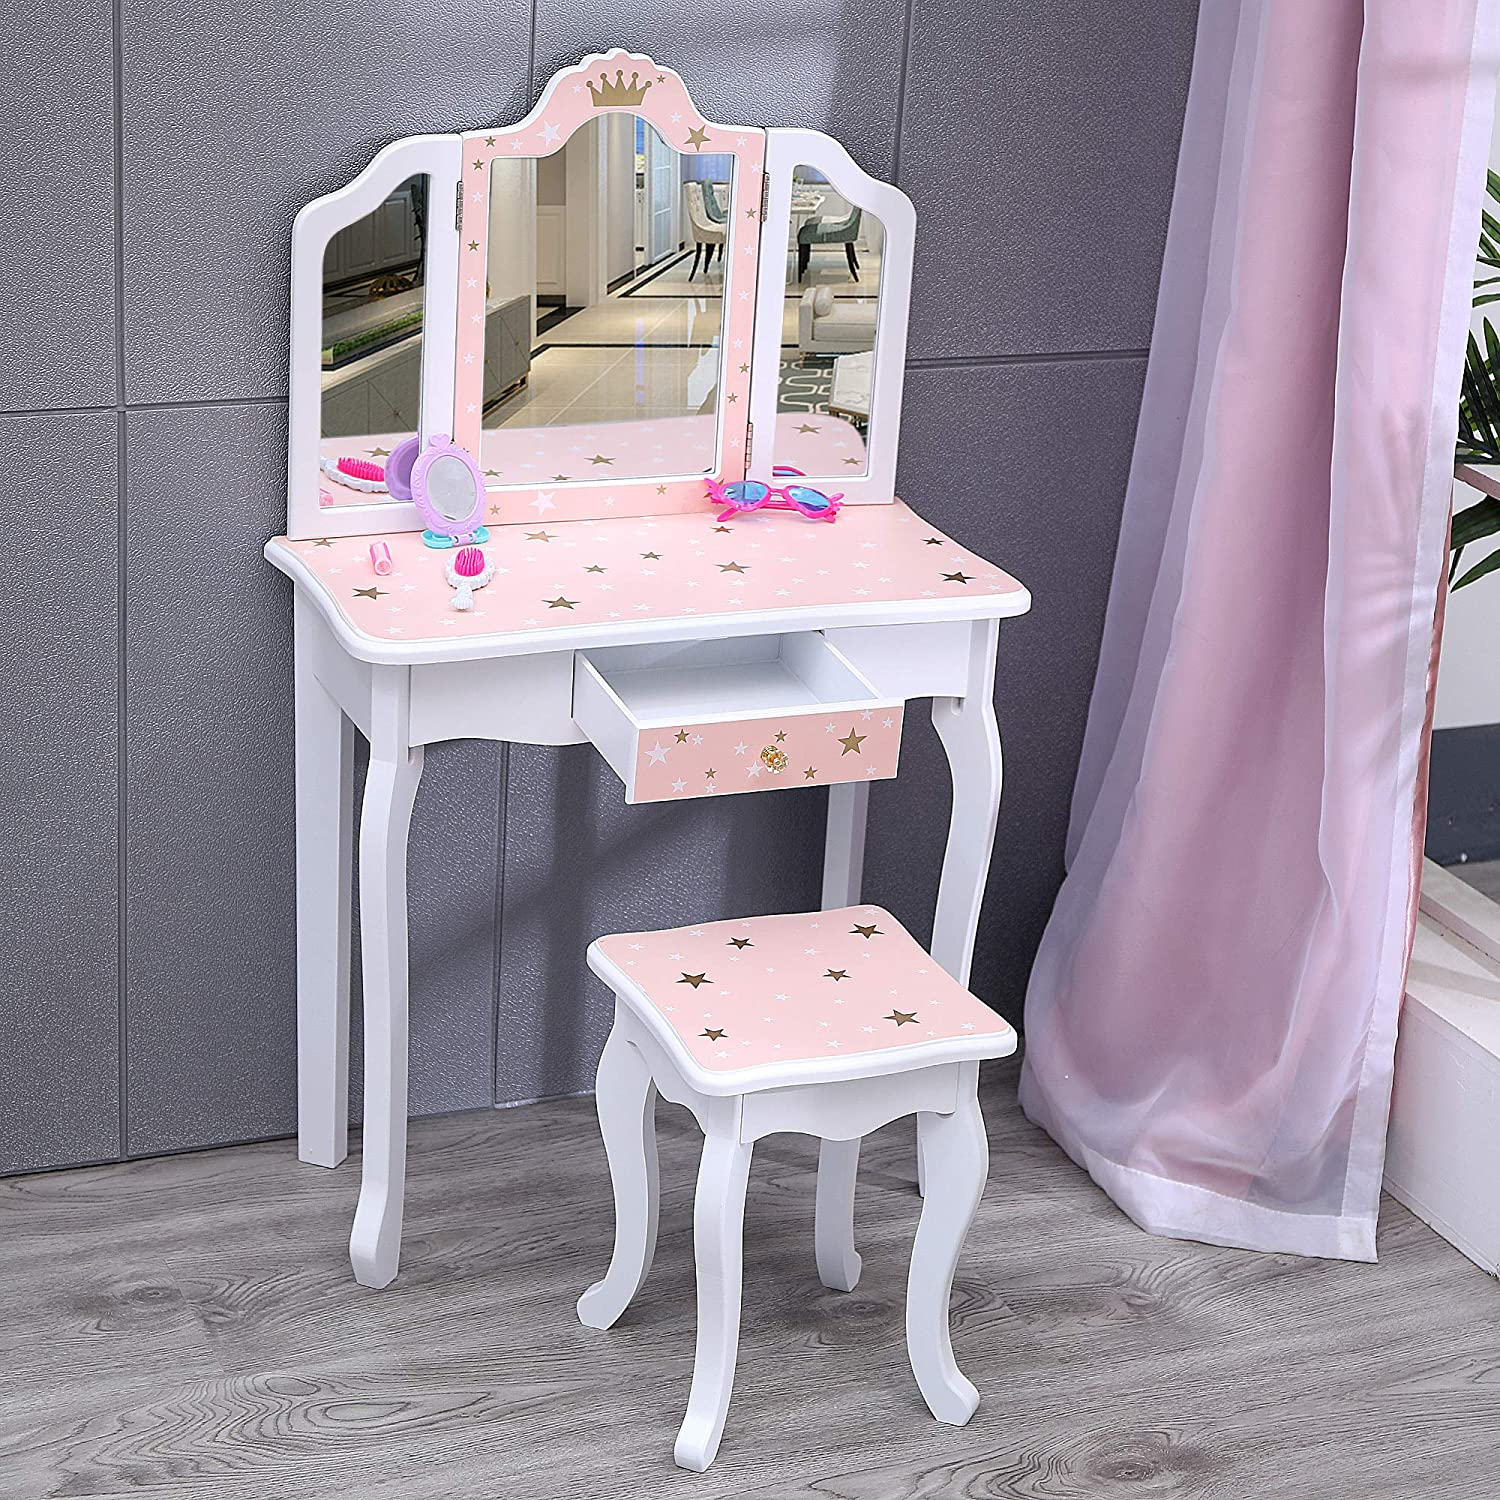 Nromant Kids Vanity Table and Chair Set, Girls Vanity Set with Mirror and Stool, Tri-Folding Mirror, Makeup Dressing Princess Table with Drawer, Kids Vanity Set with Mirror Age 4-9